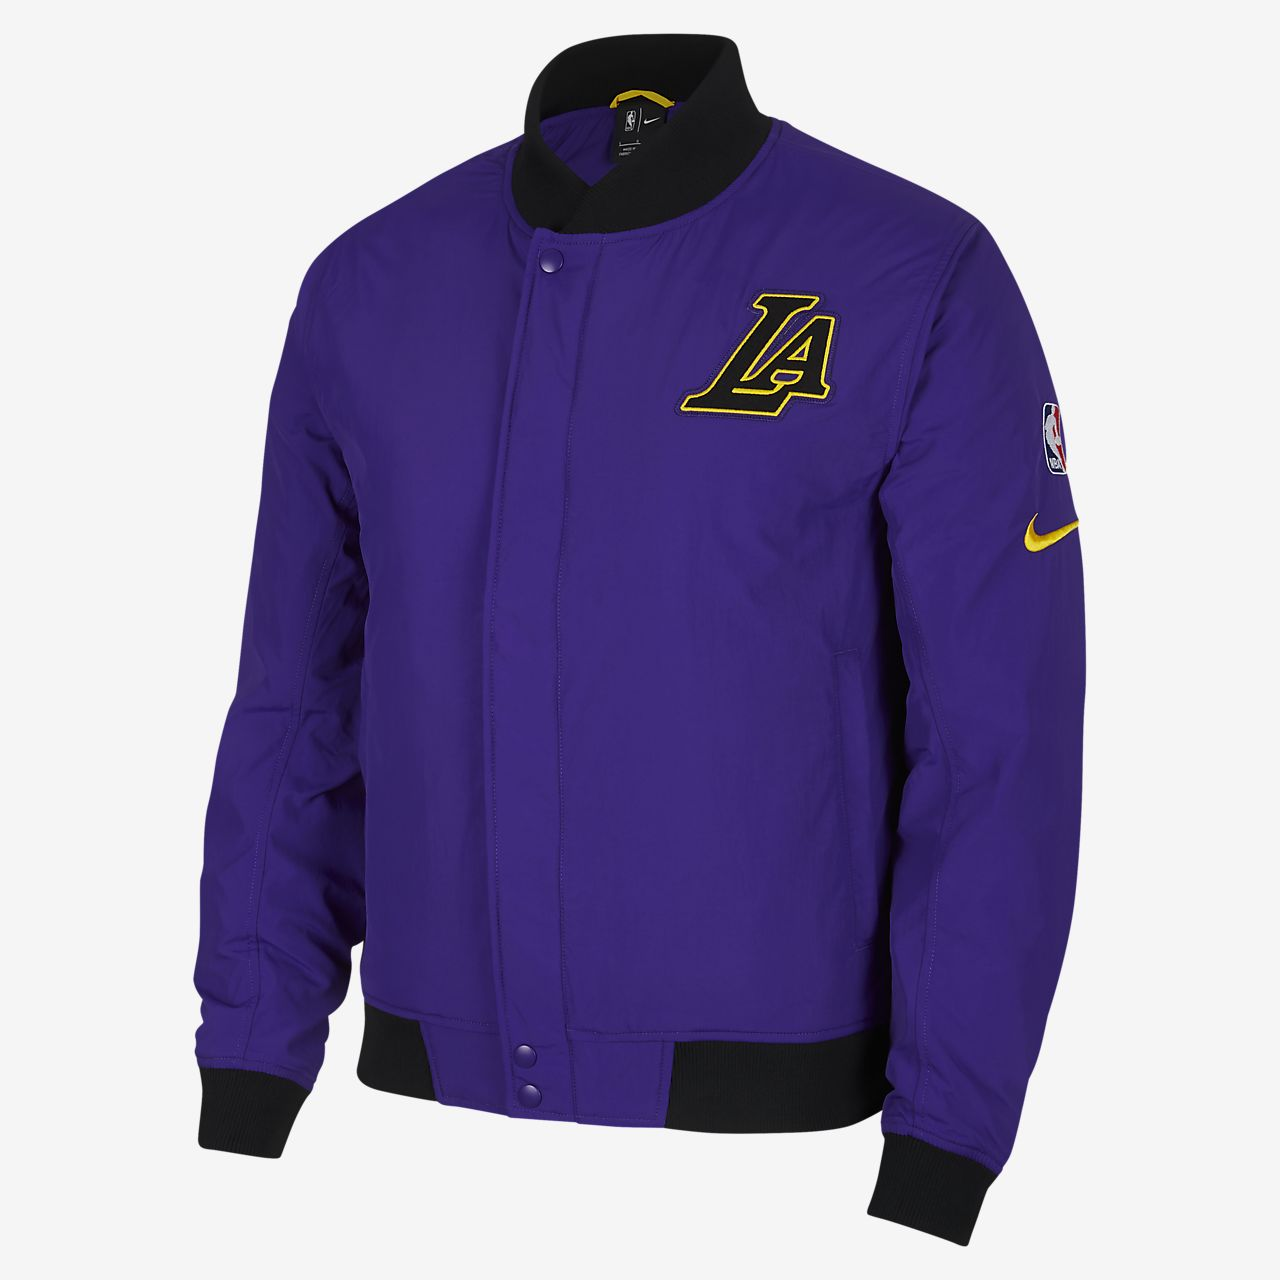 d66eec0d2 Los Angeles Lakers Nike Courtside Men's NBA Jacket. Nike.com AT